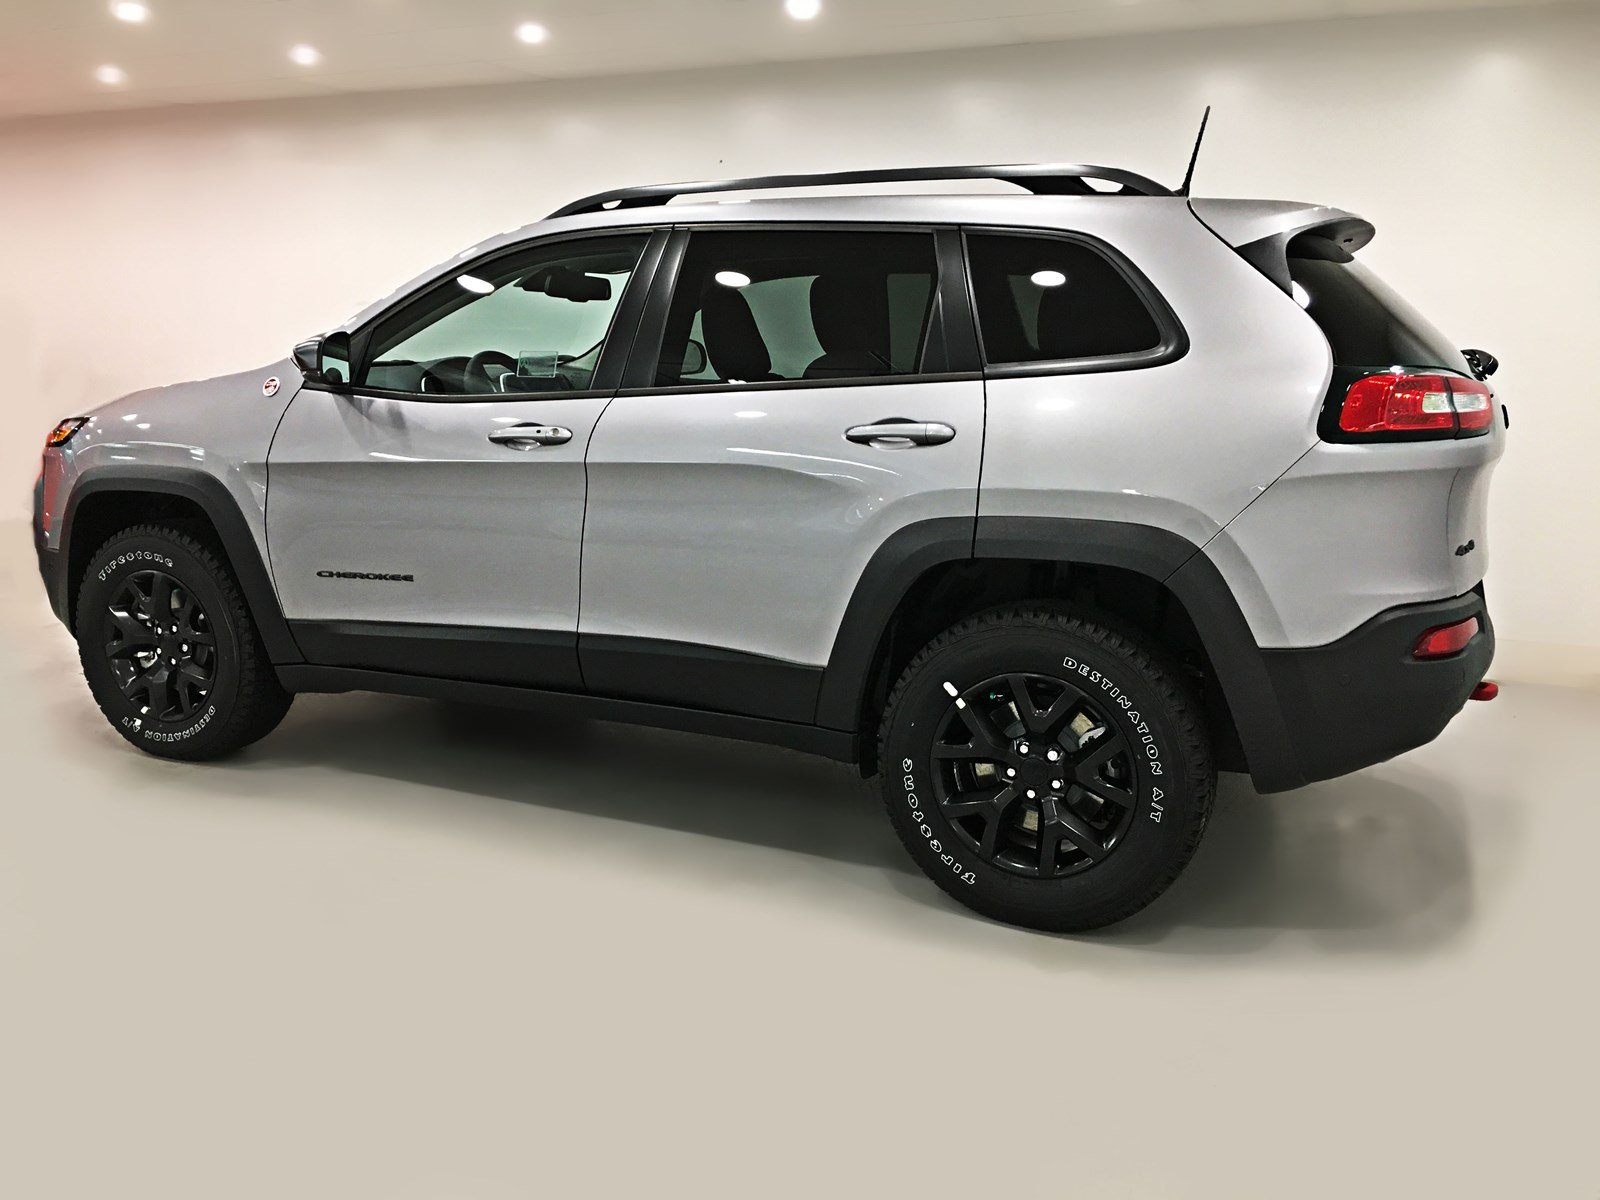 new 2018 jeep cherokee trailhawk leather plus 4x4 v6 sunroof navigation sport utility near. Black Bedroom Furniture Sets. Home Design Ideas